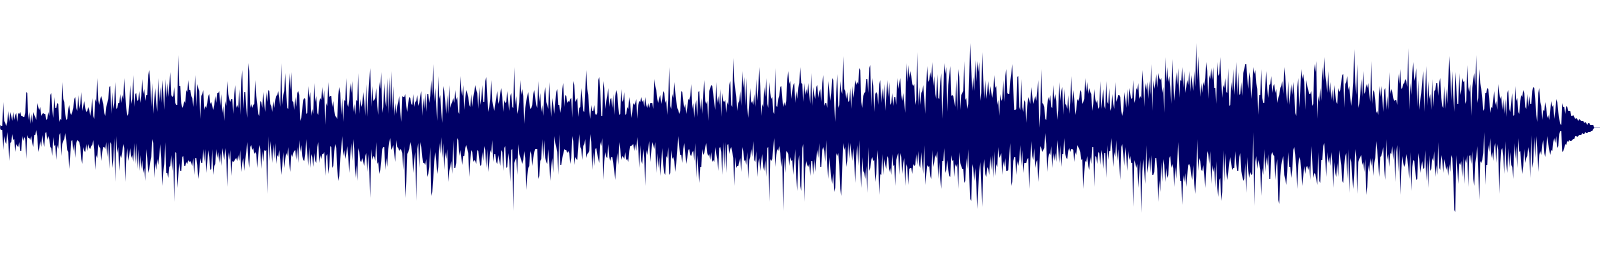 waveform of track #112798